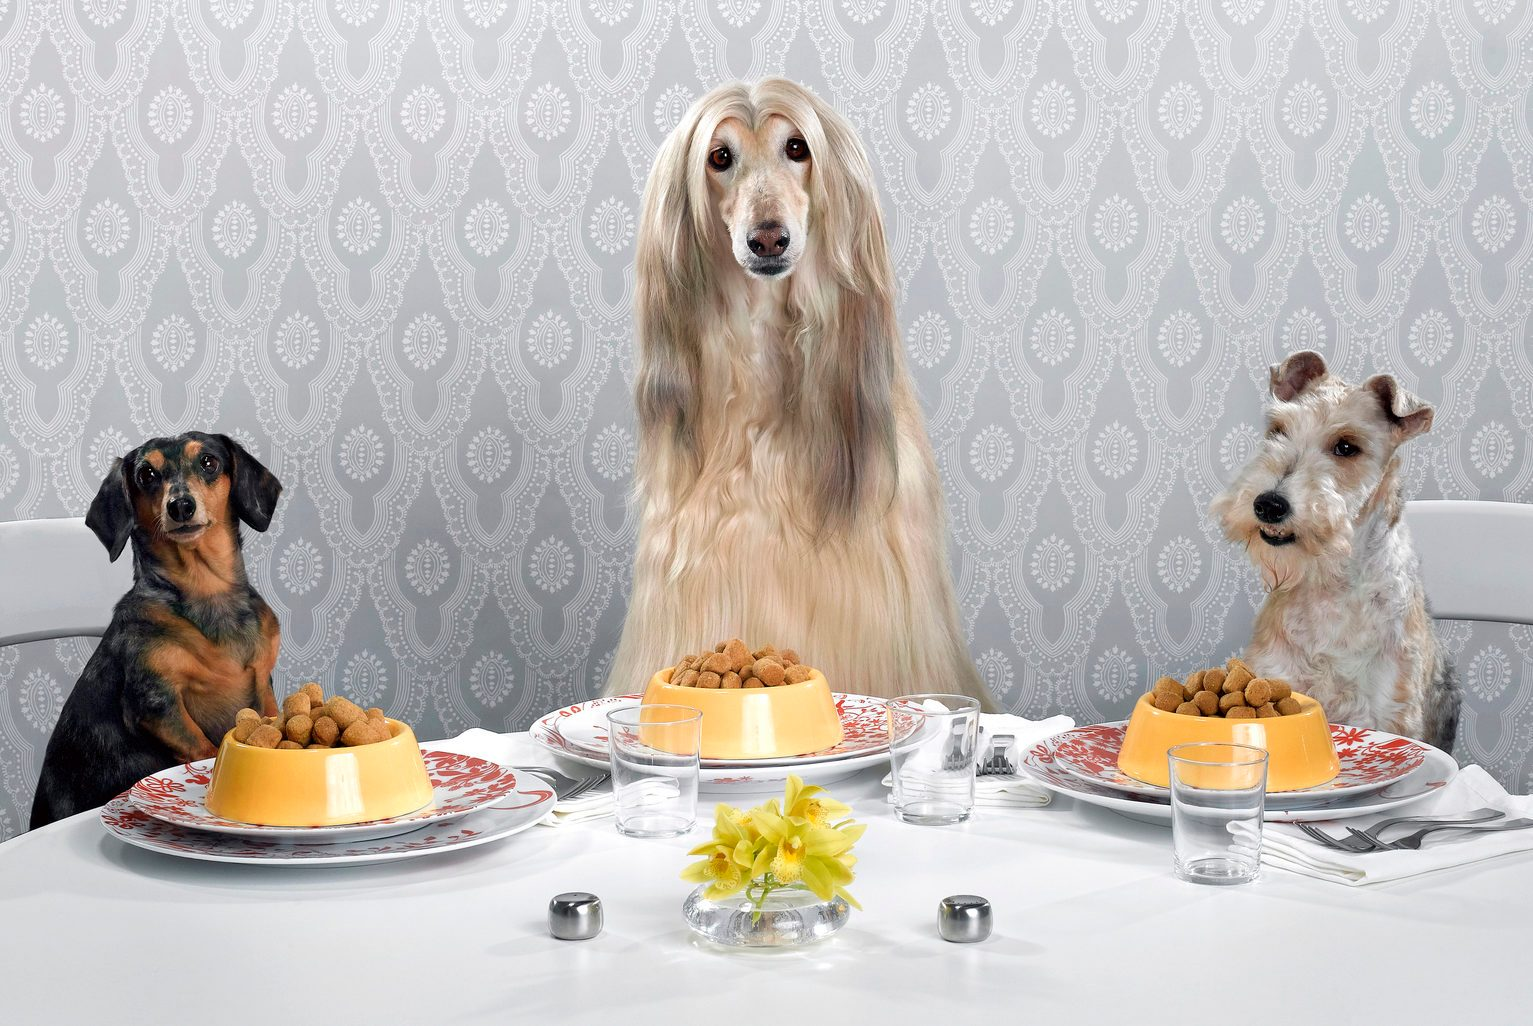 Dachshund, Afghan hound, and wire-haired terrier sitting around dinner table